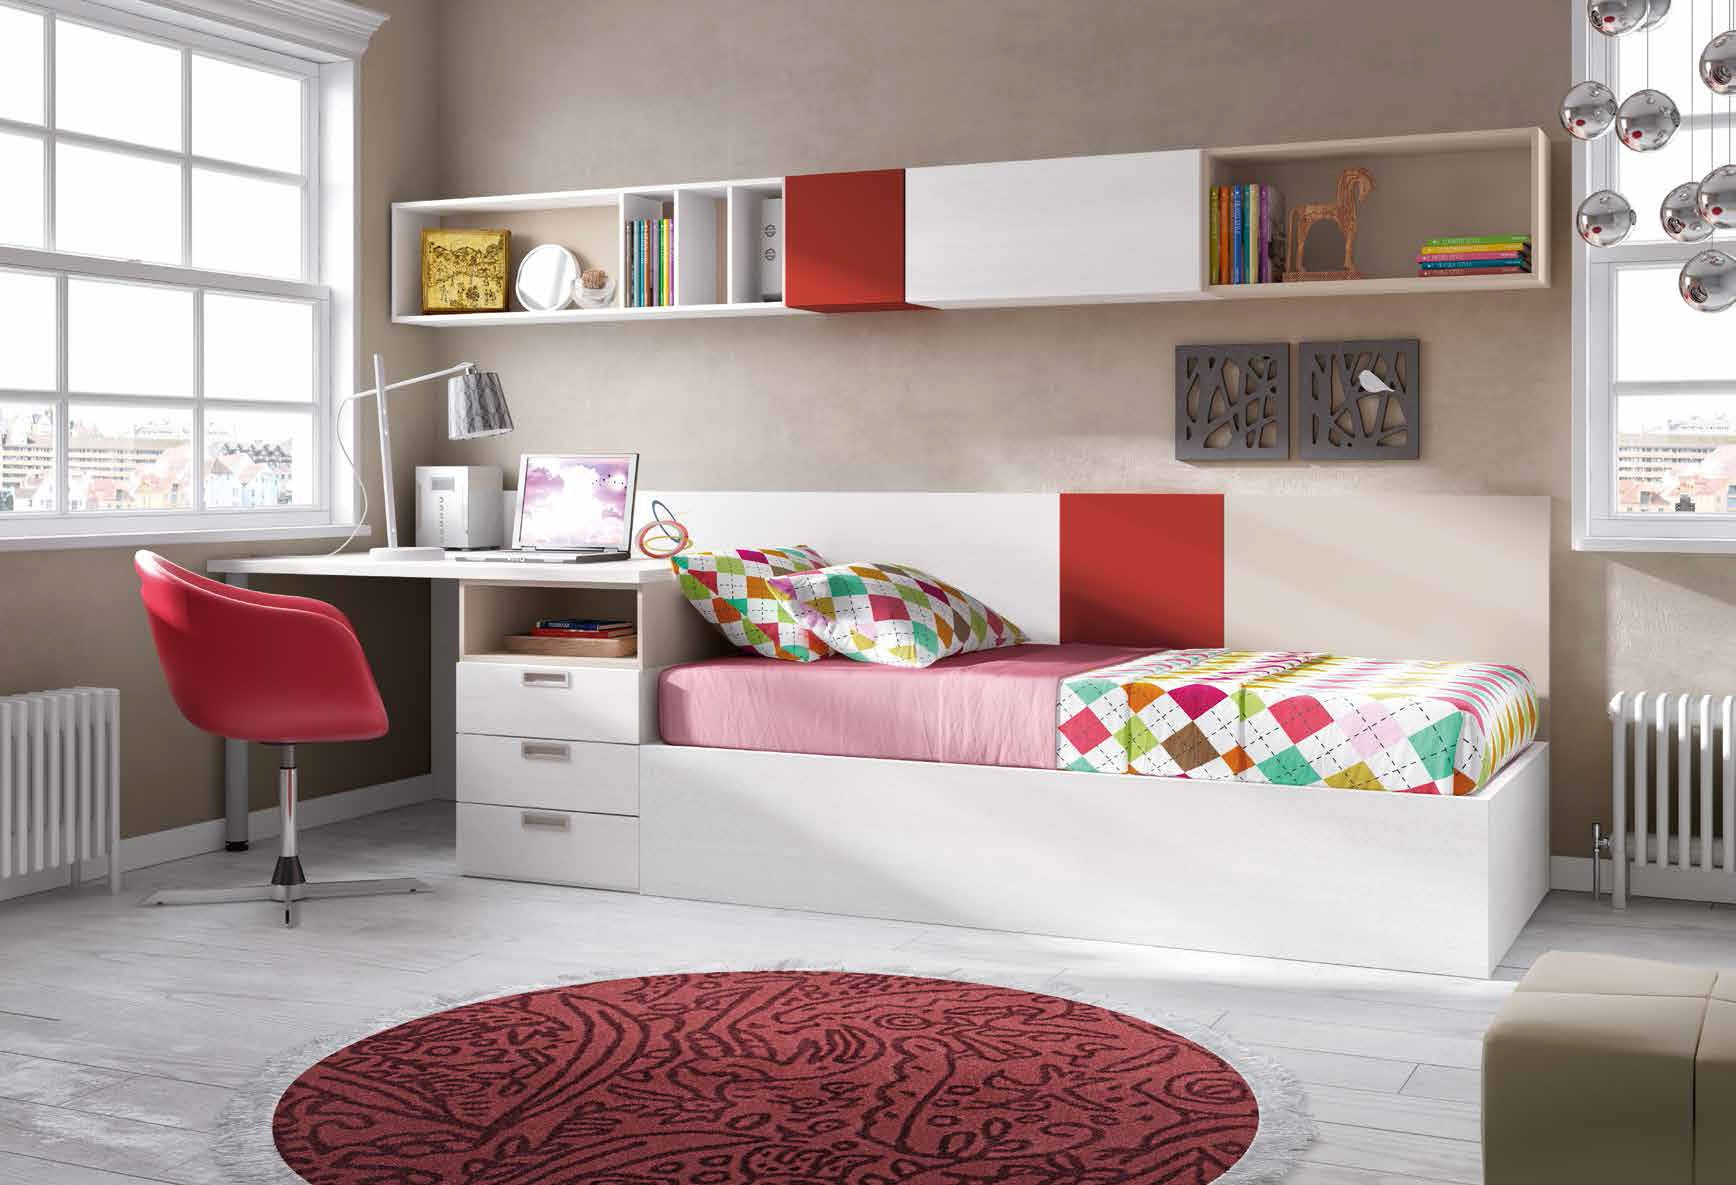 10 claves para decorar habitaciones juveniles blog de for Simulador decoracion